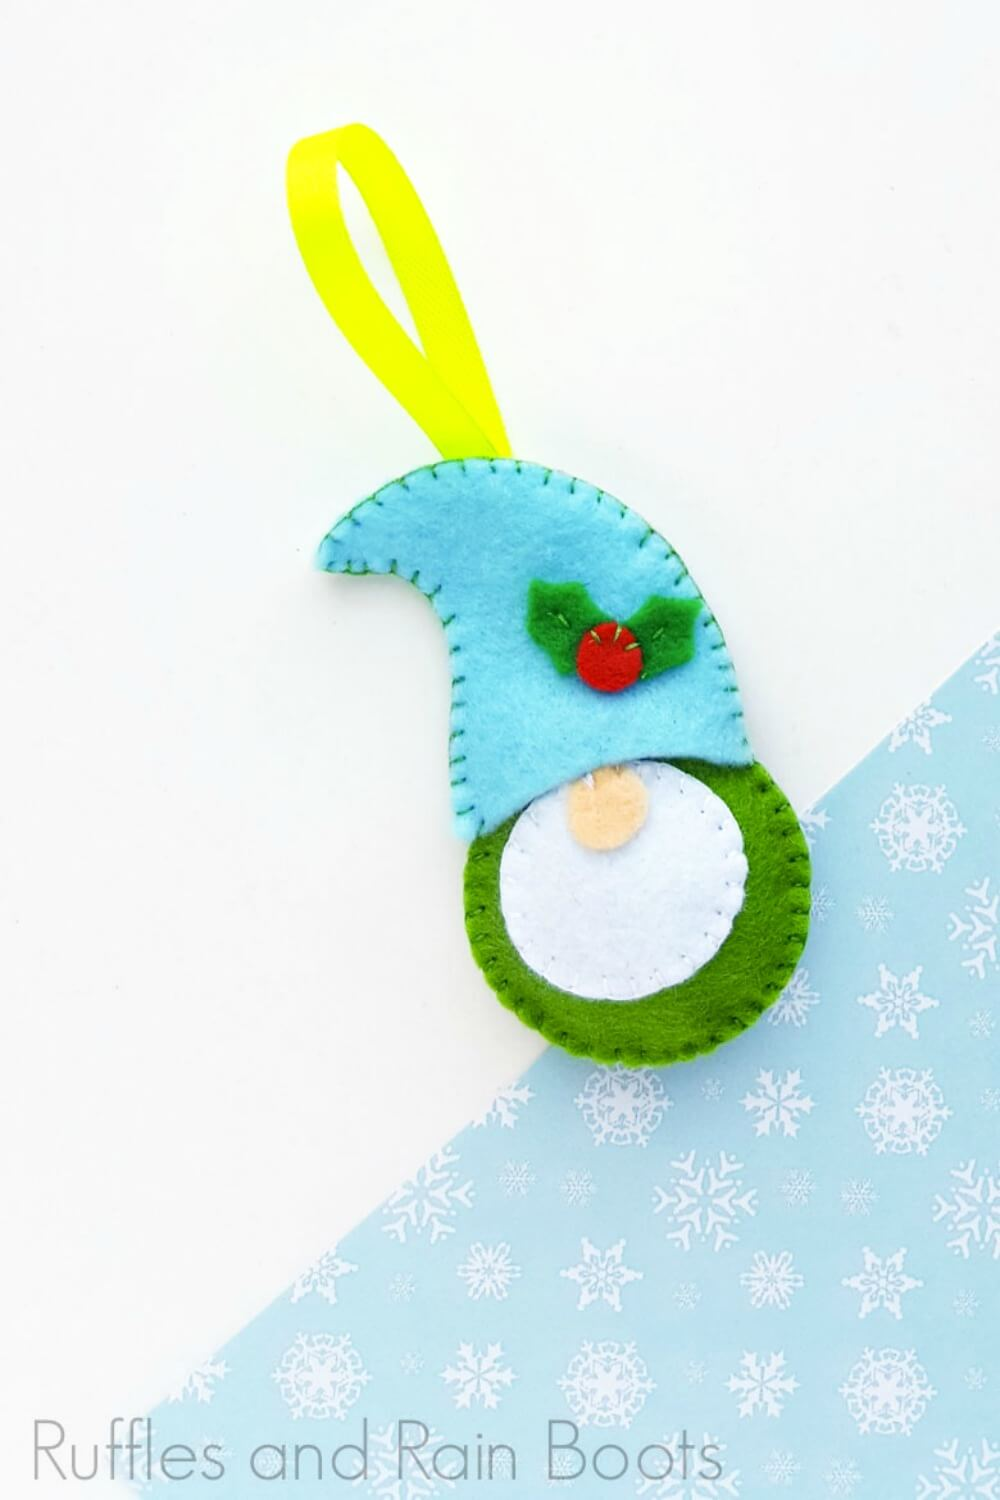 felt gnome ornament pattern on a white and blue background